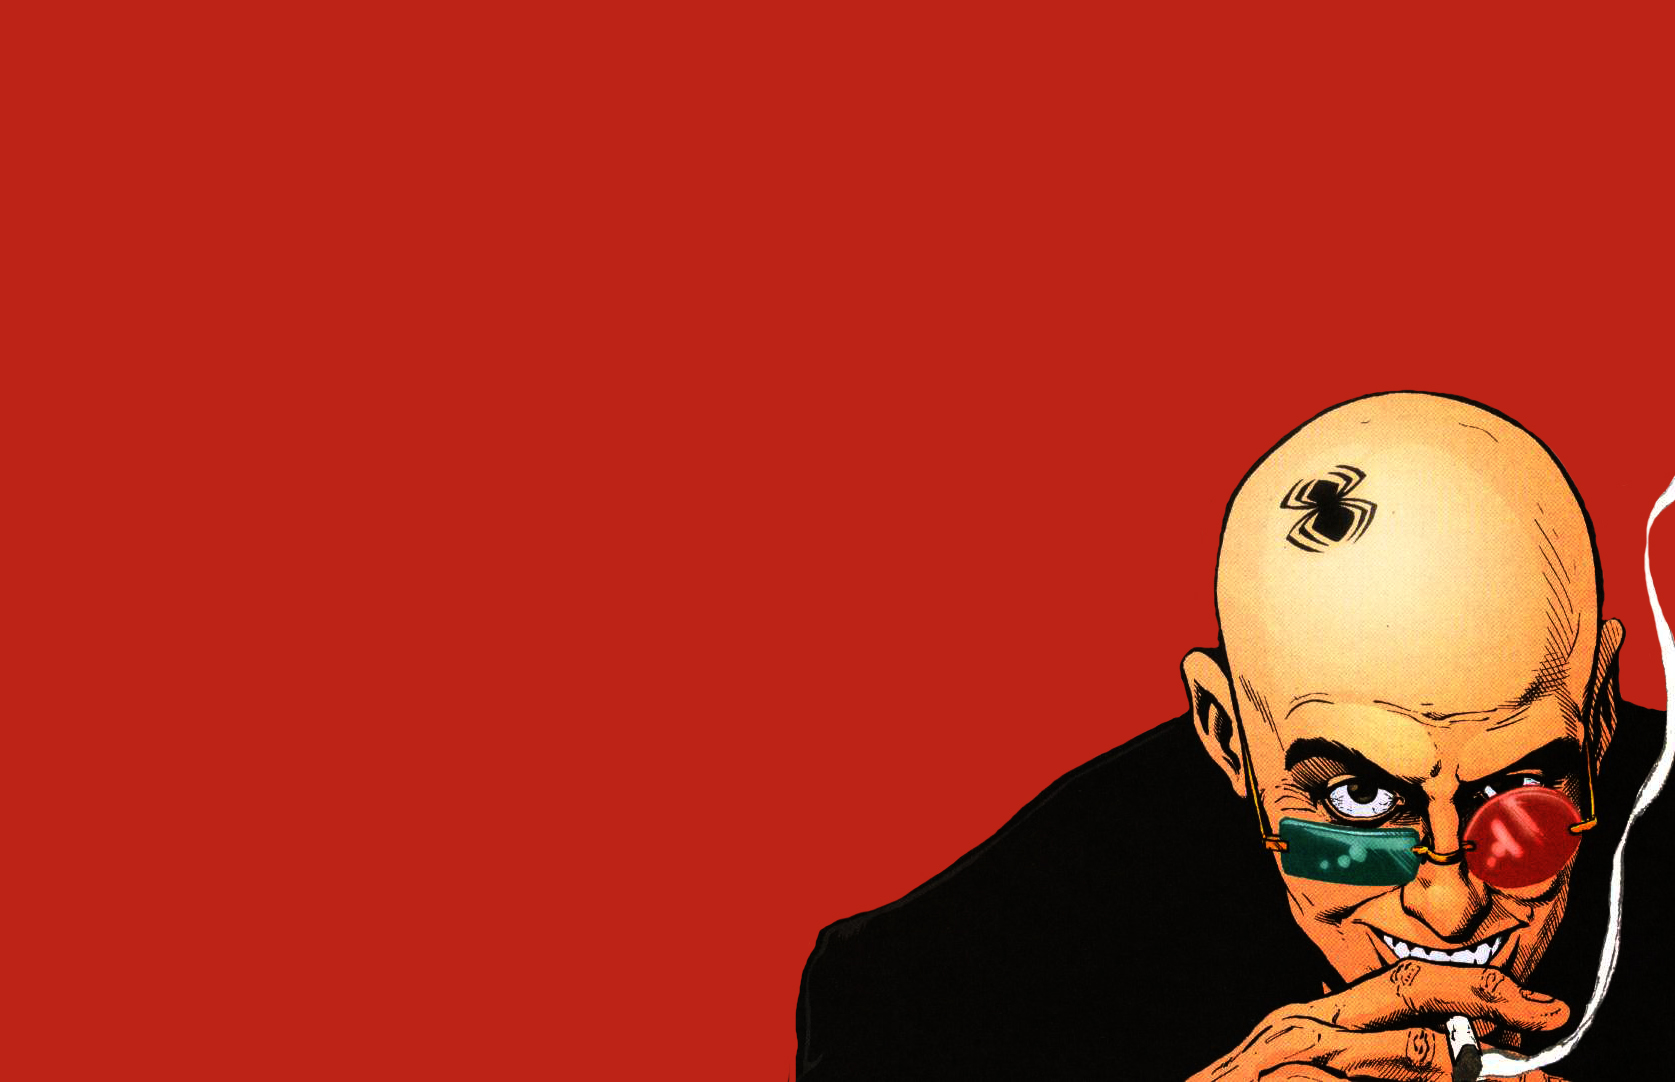 Transmetropolitan Wallpaper and Background Image 1675x1082 ID 1675x1082